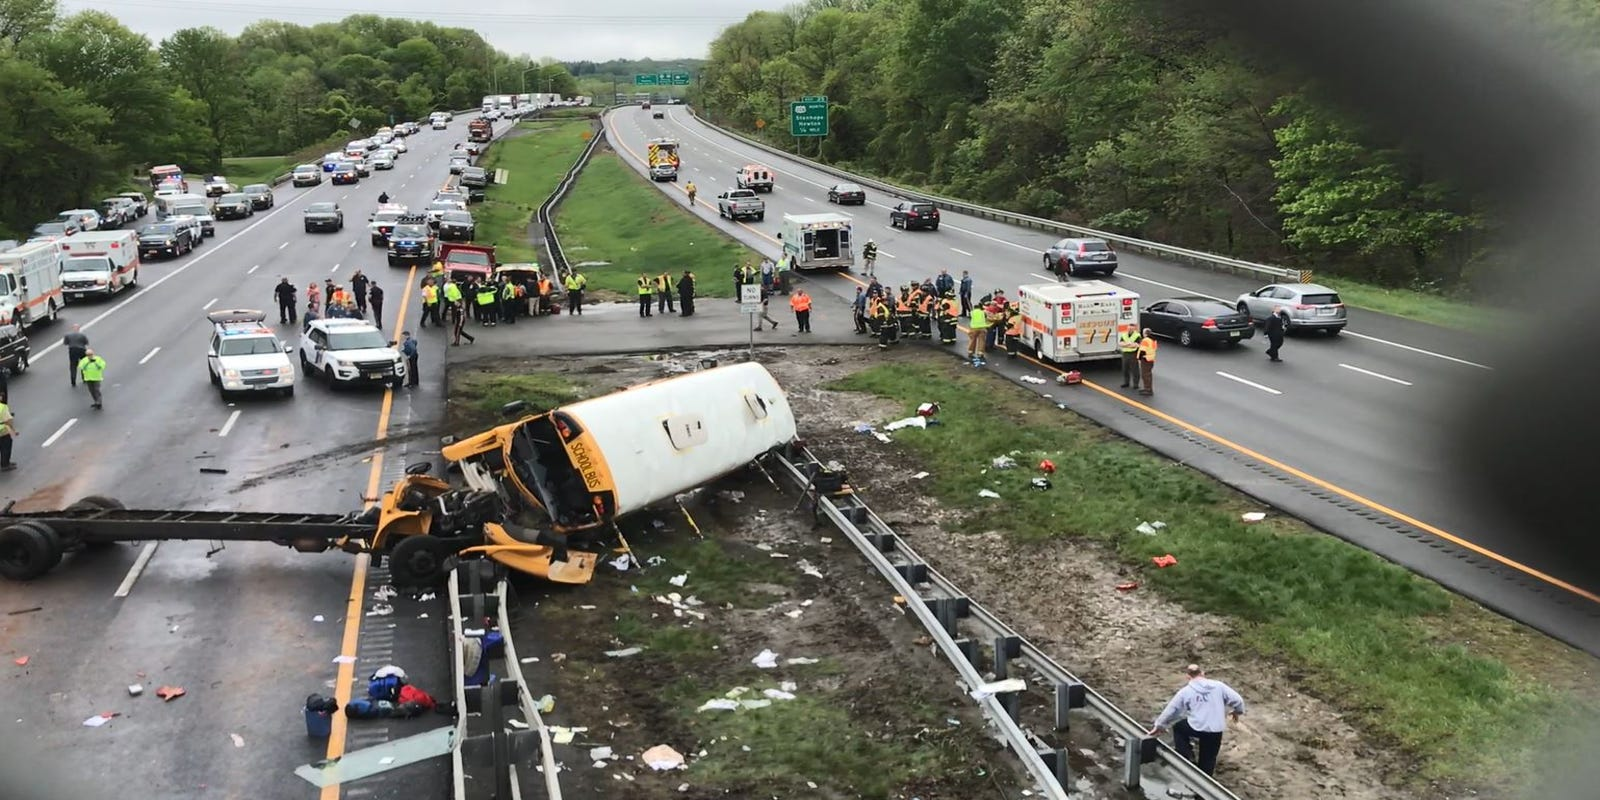 Accident on route 40 nj today